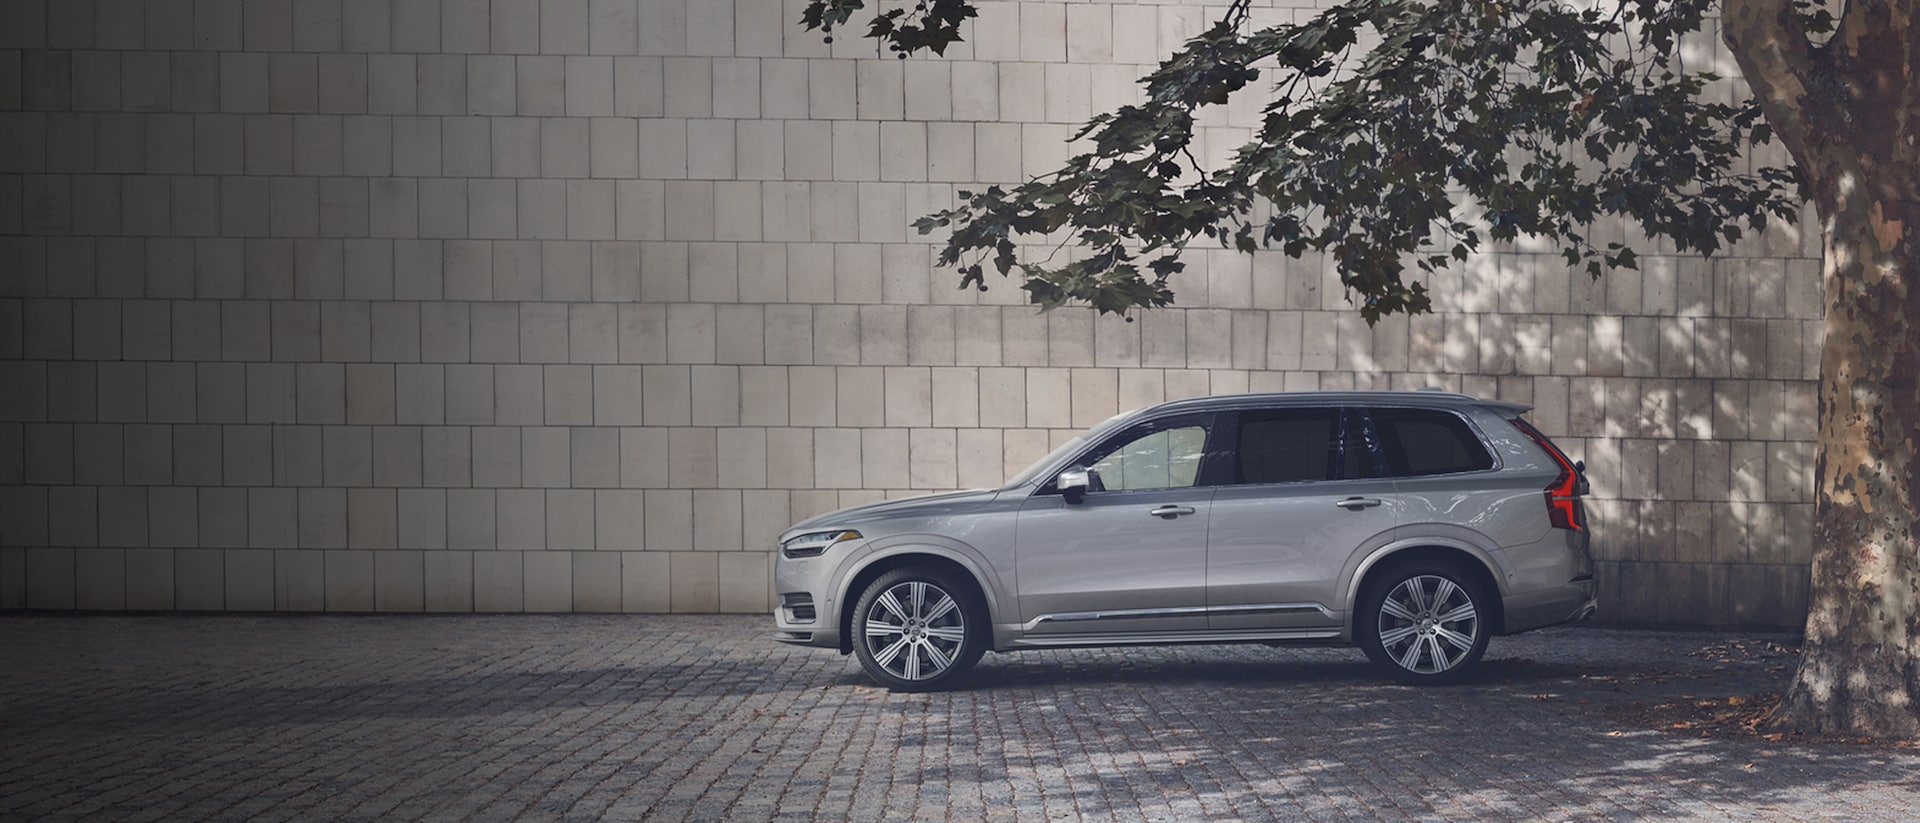 XC90 Care by Volvo